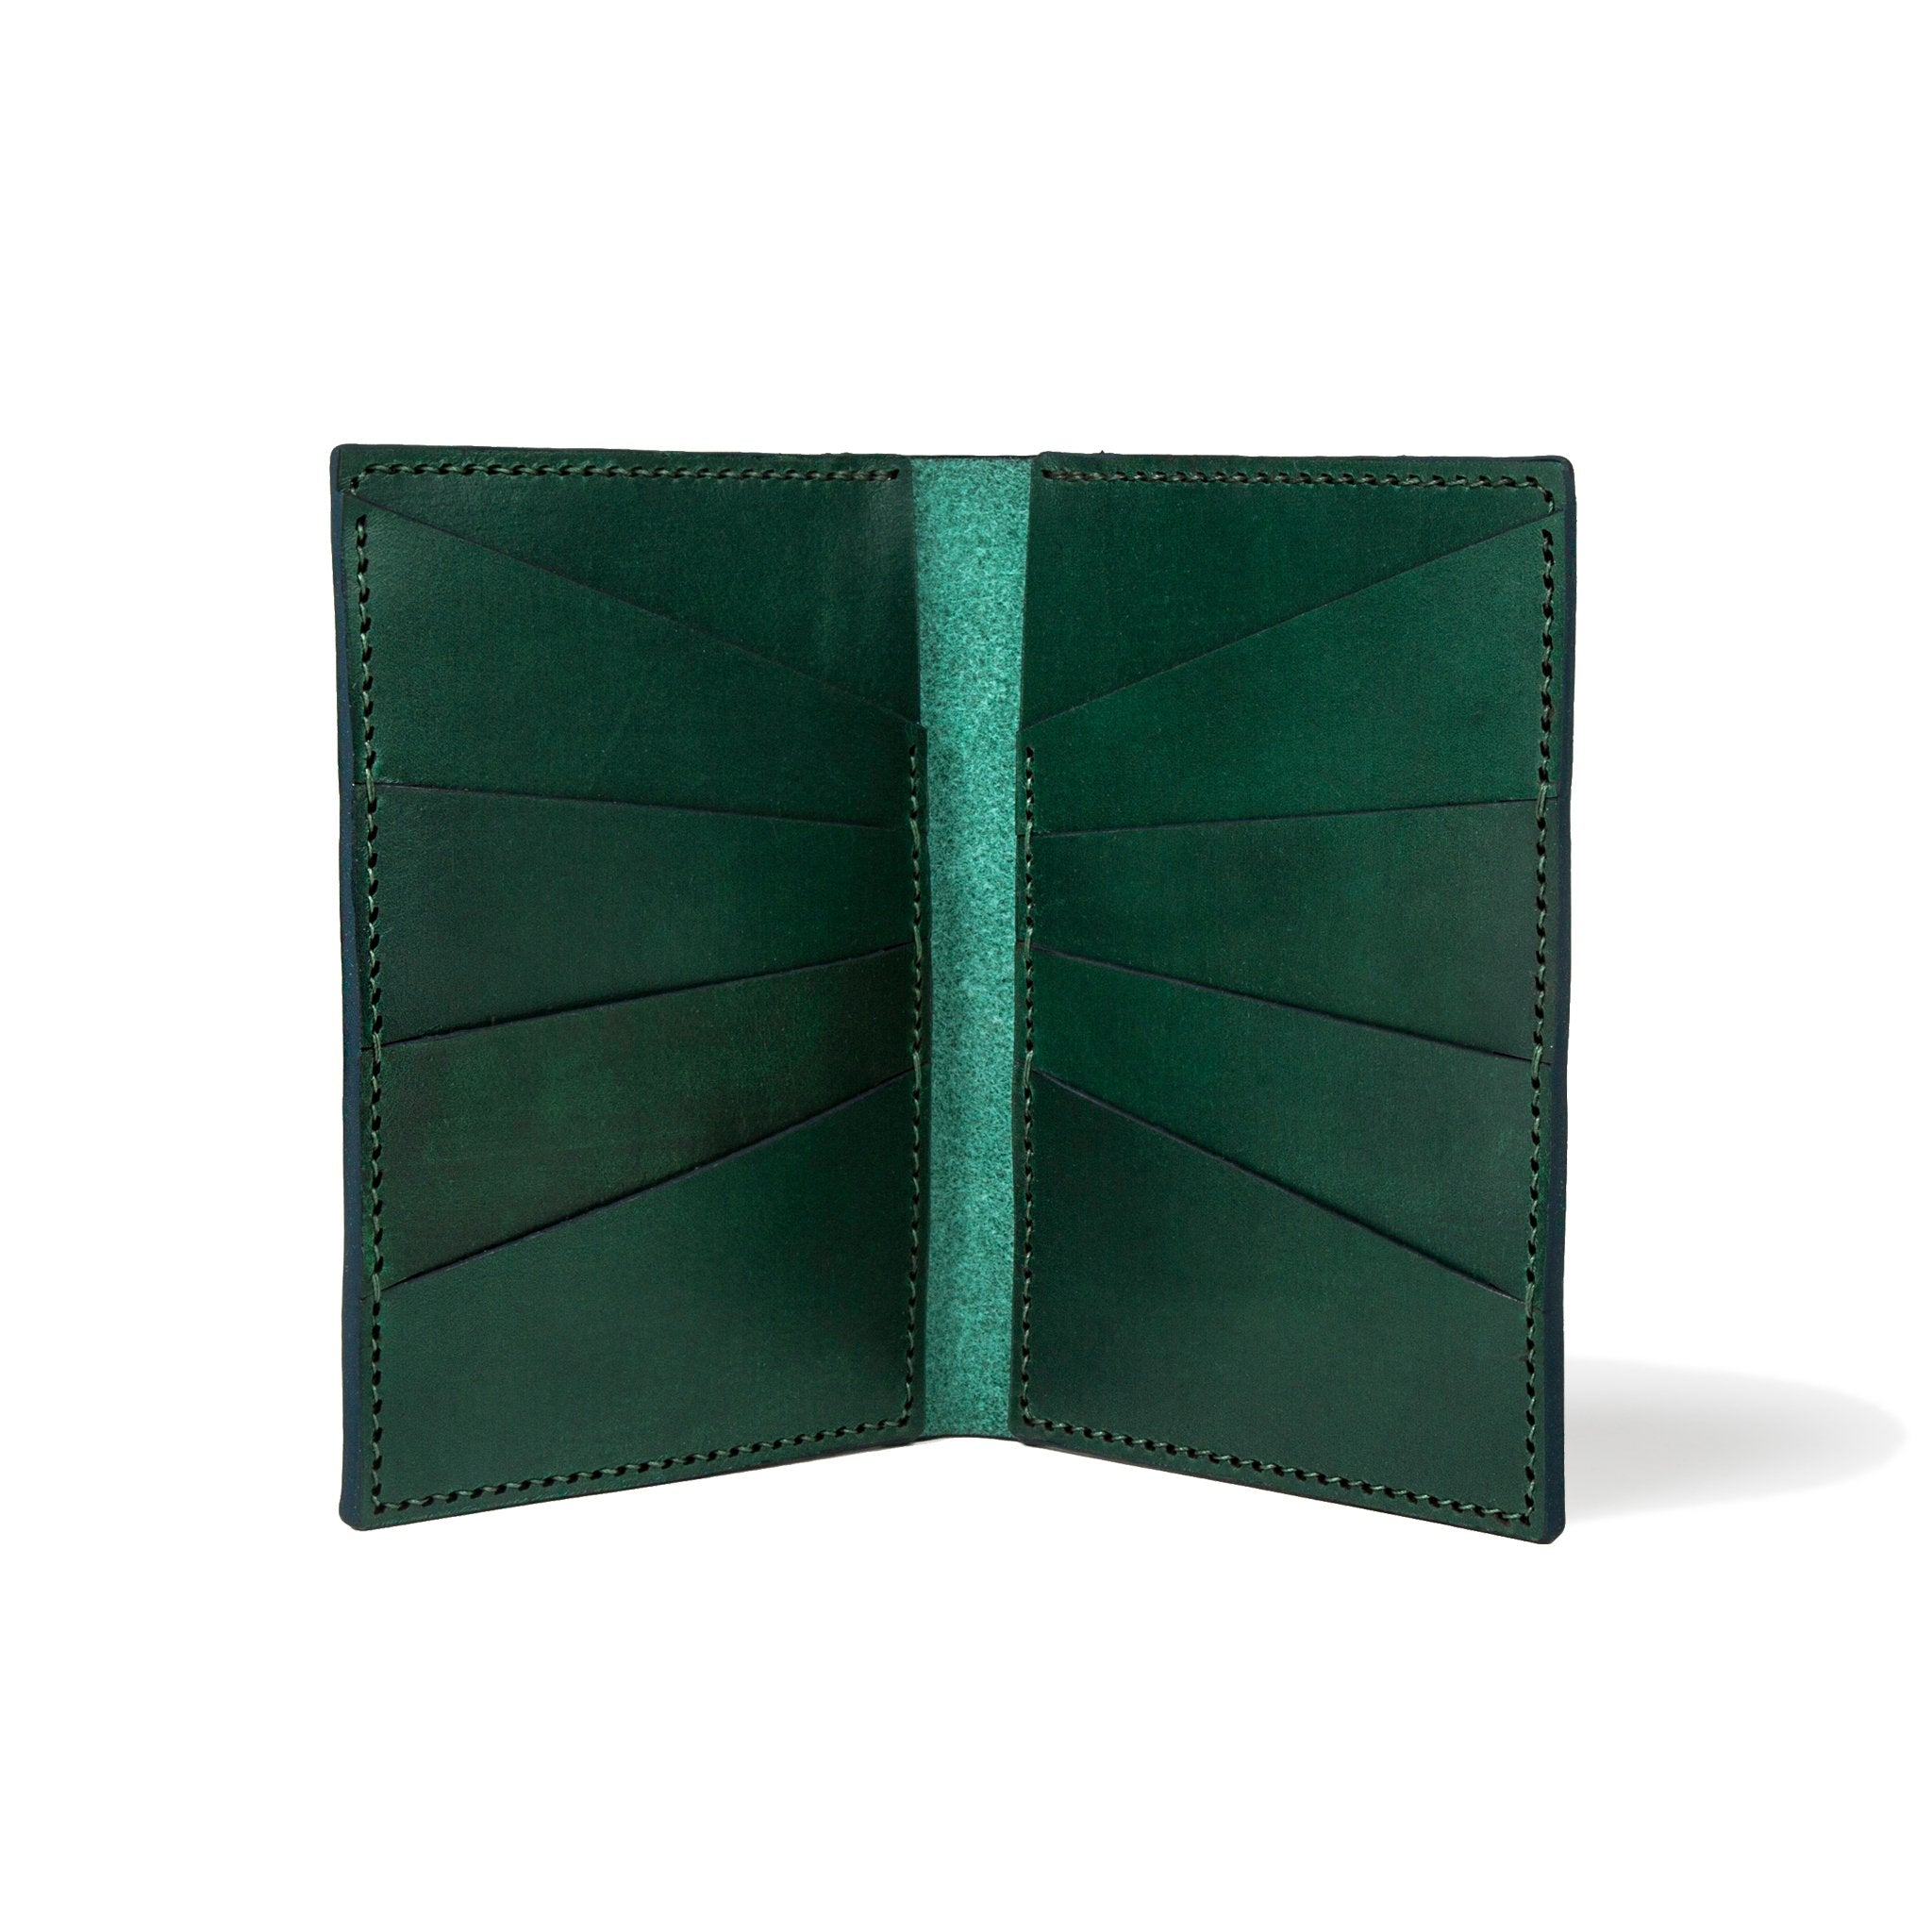 The Nomad - Horween Green Cavaliere